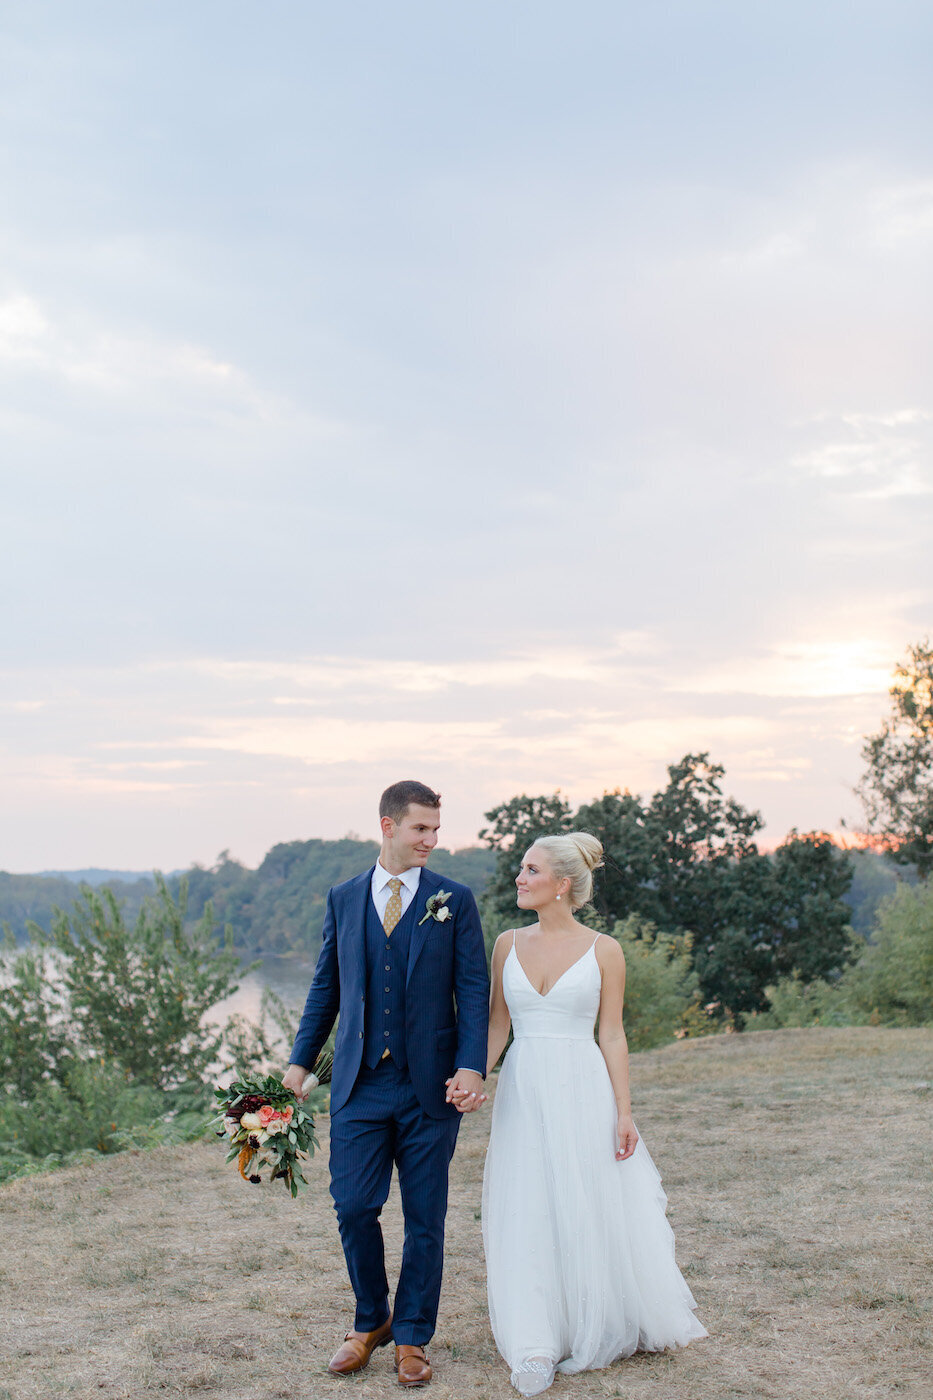 Valerie+Hunter Fall Bohemia Overlook Wedding Sunset-1888